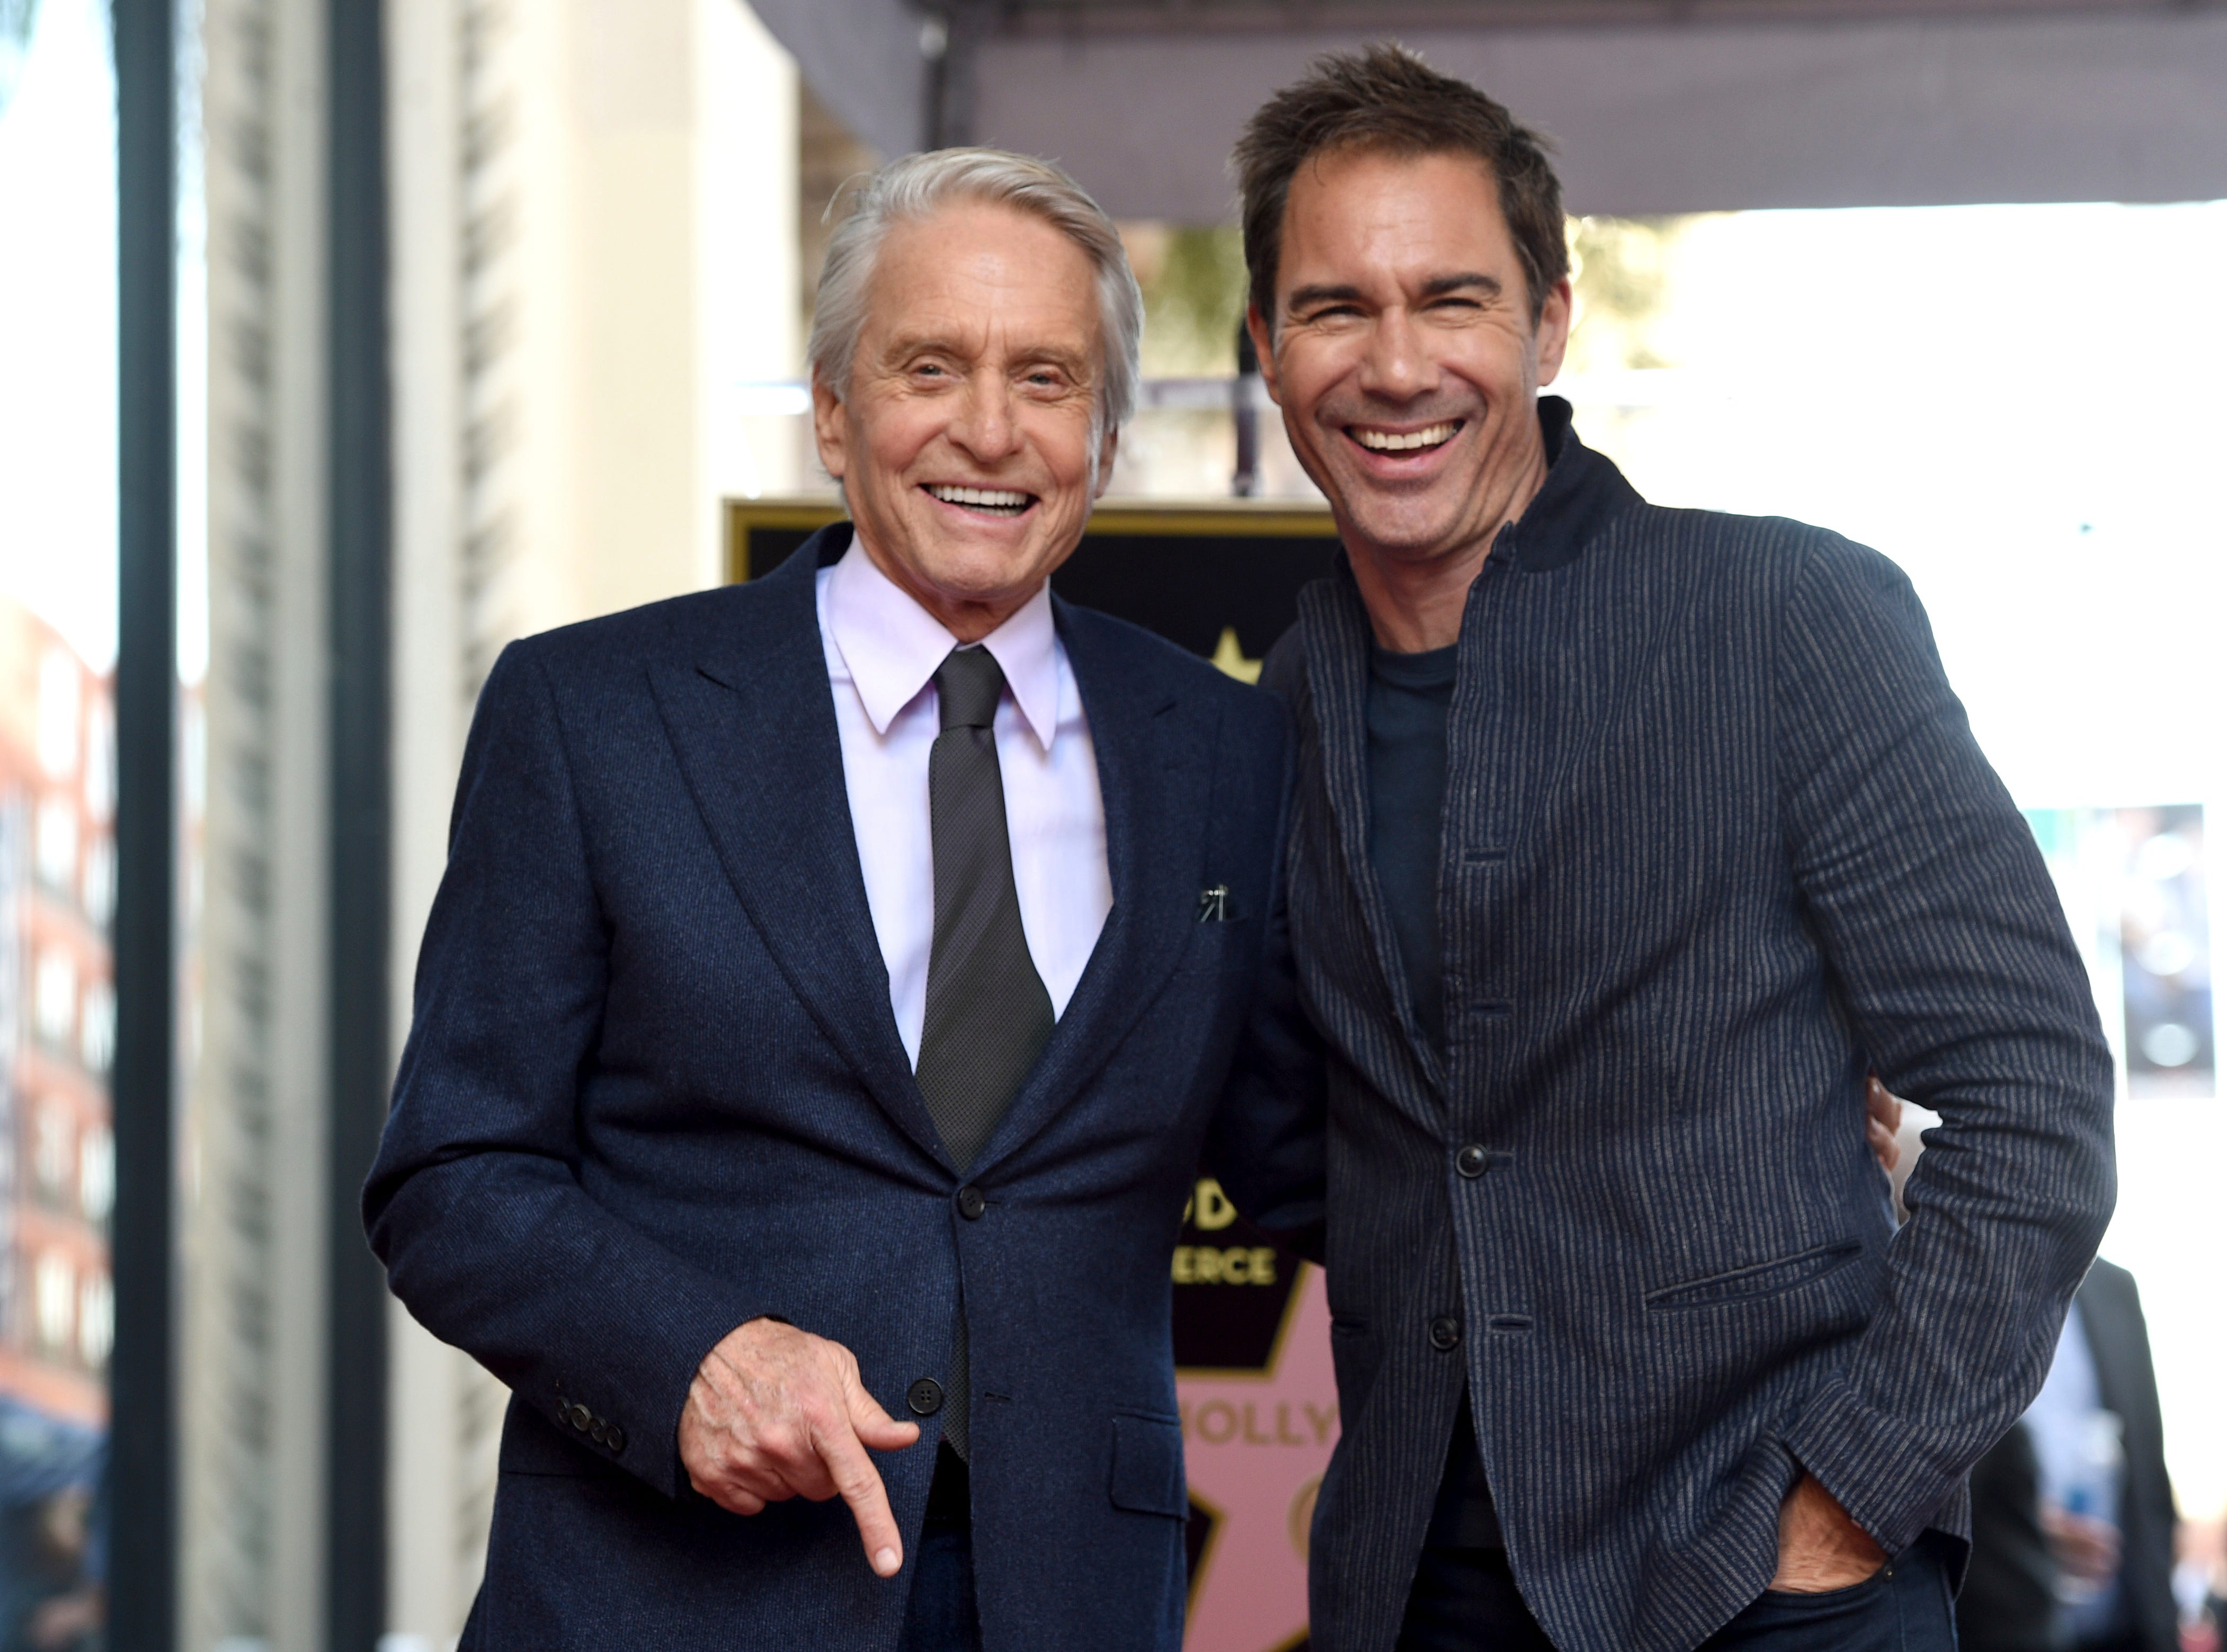 """Michael Douglas joked that his best onscreen love interest was in the audience, """"Will and Grace"""" co-star Eric McCormack. Douglas was at McCormack's Walk of Fame ceremony, too."""